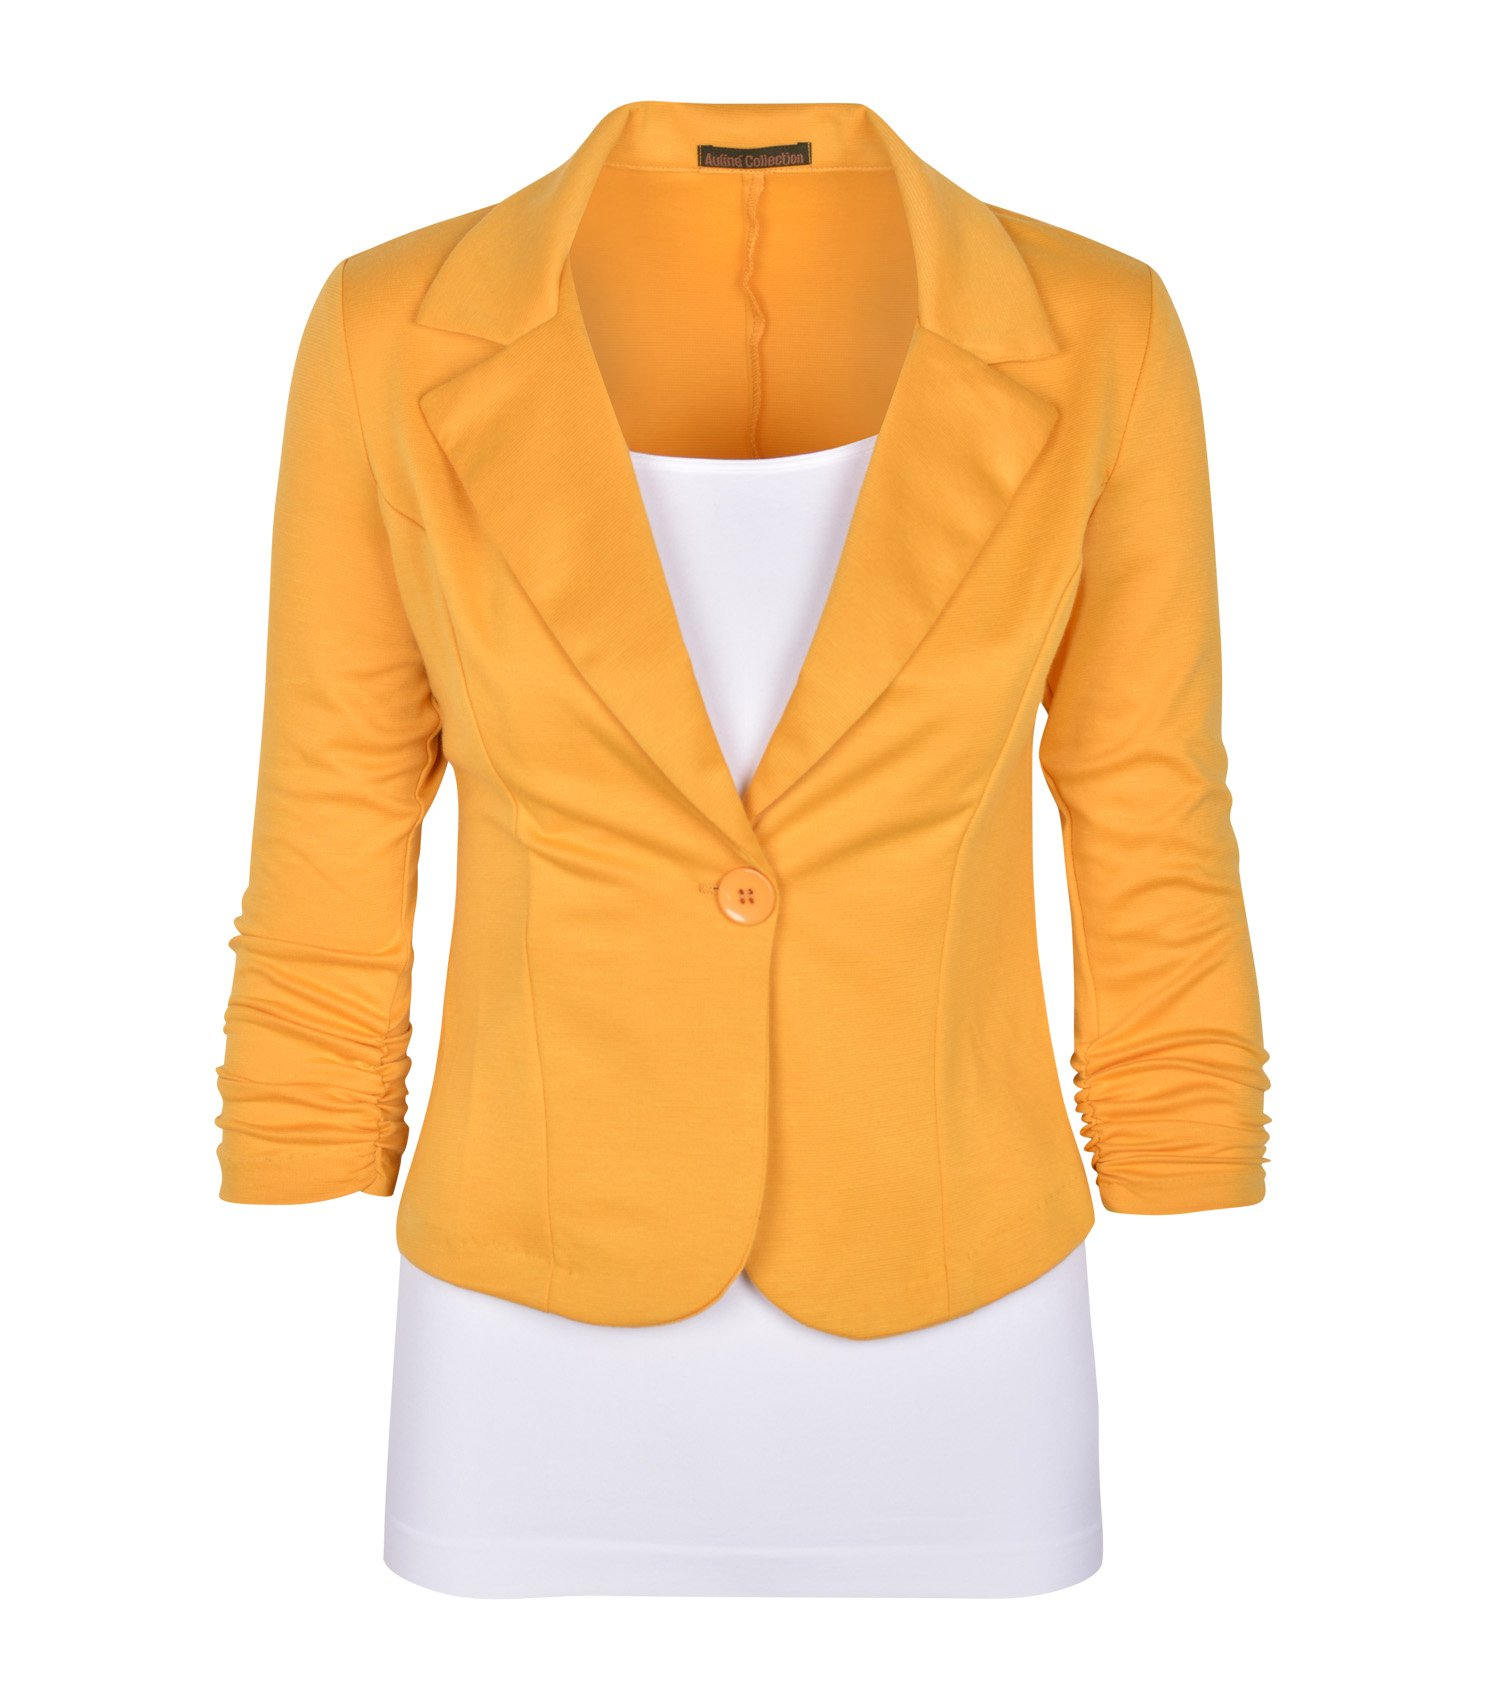 Auliné Collection Women's Casual Work Solid Color Knit Blazer Mustard 1X